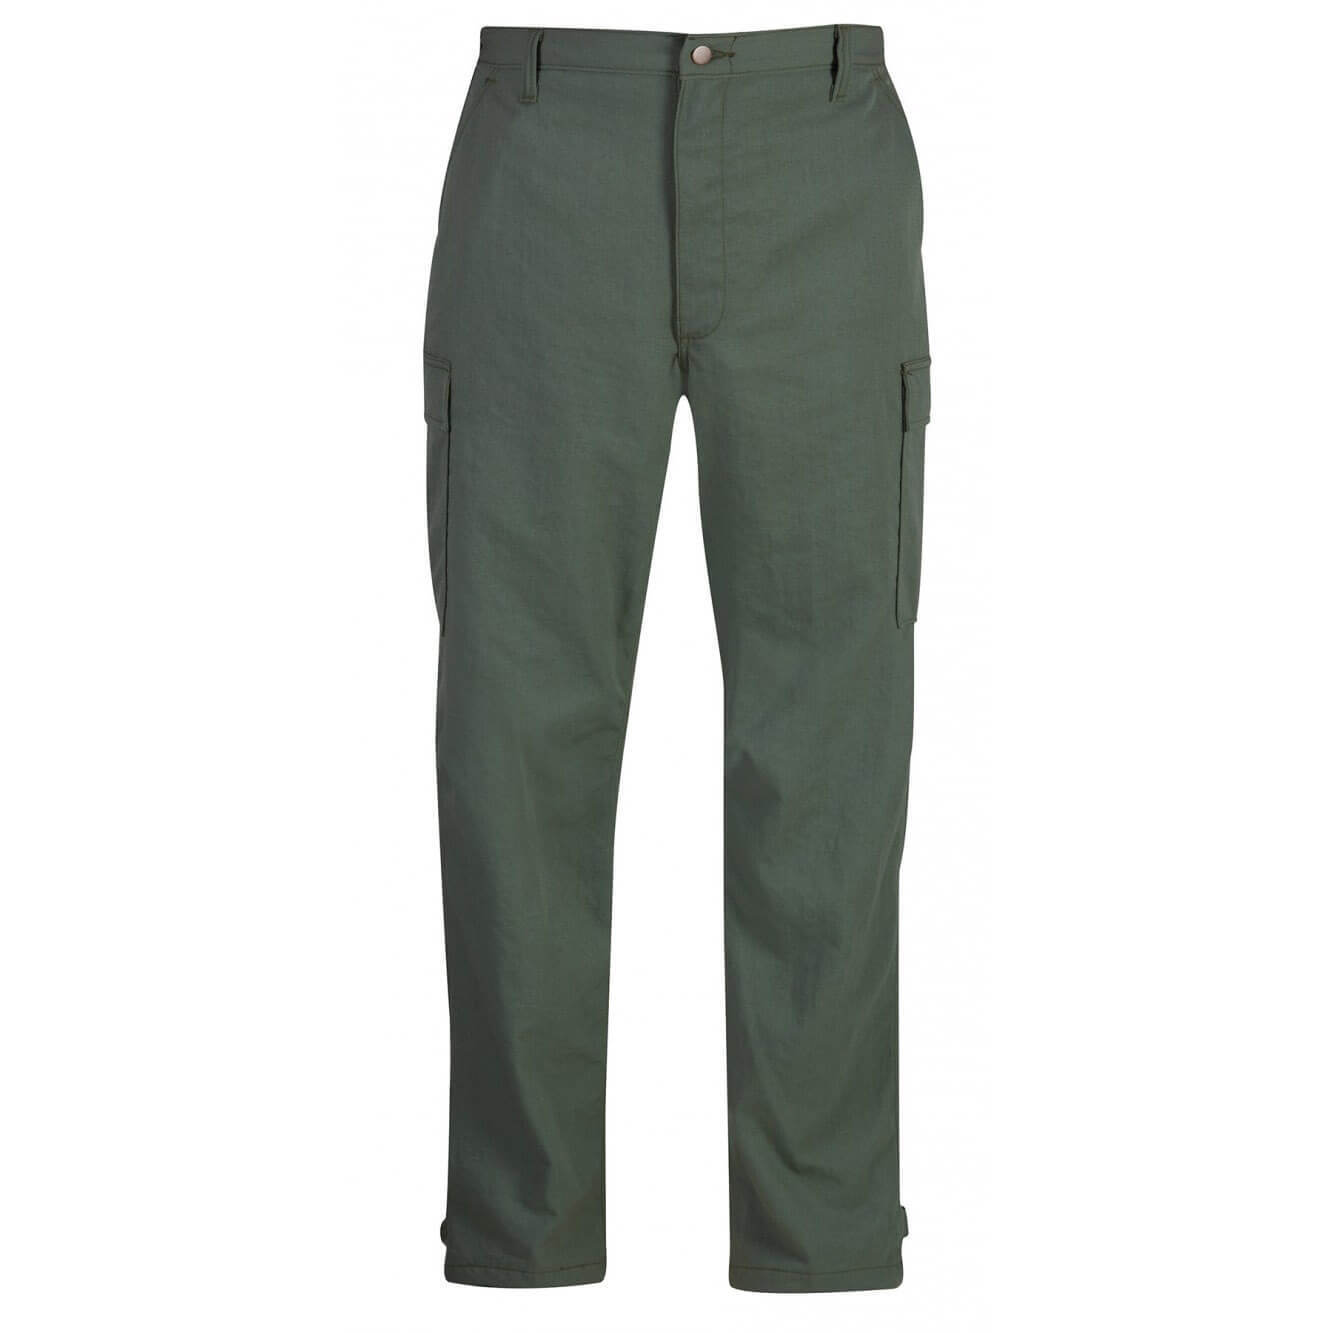 Propper Wildland Fire Fighter Tear   Flame Resistant Pleated Knees Pants - Green